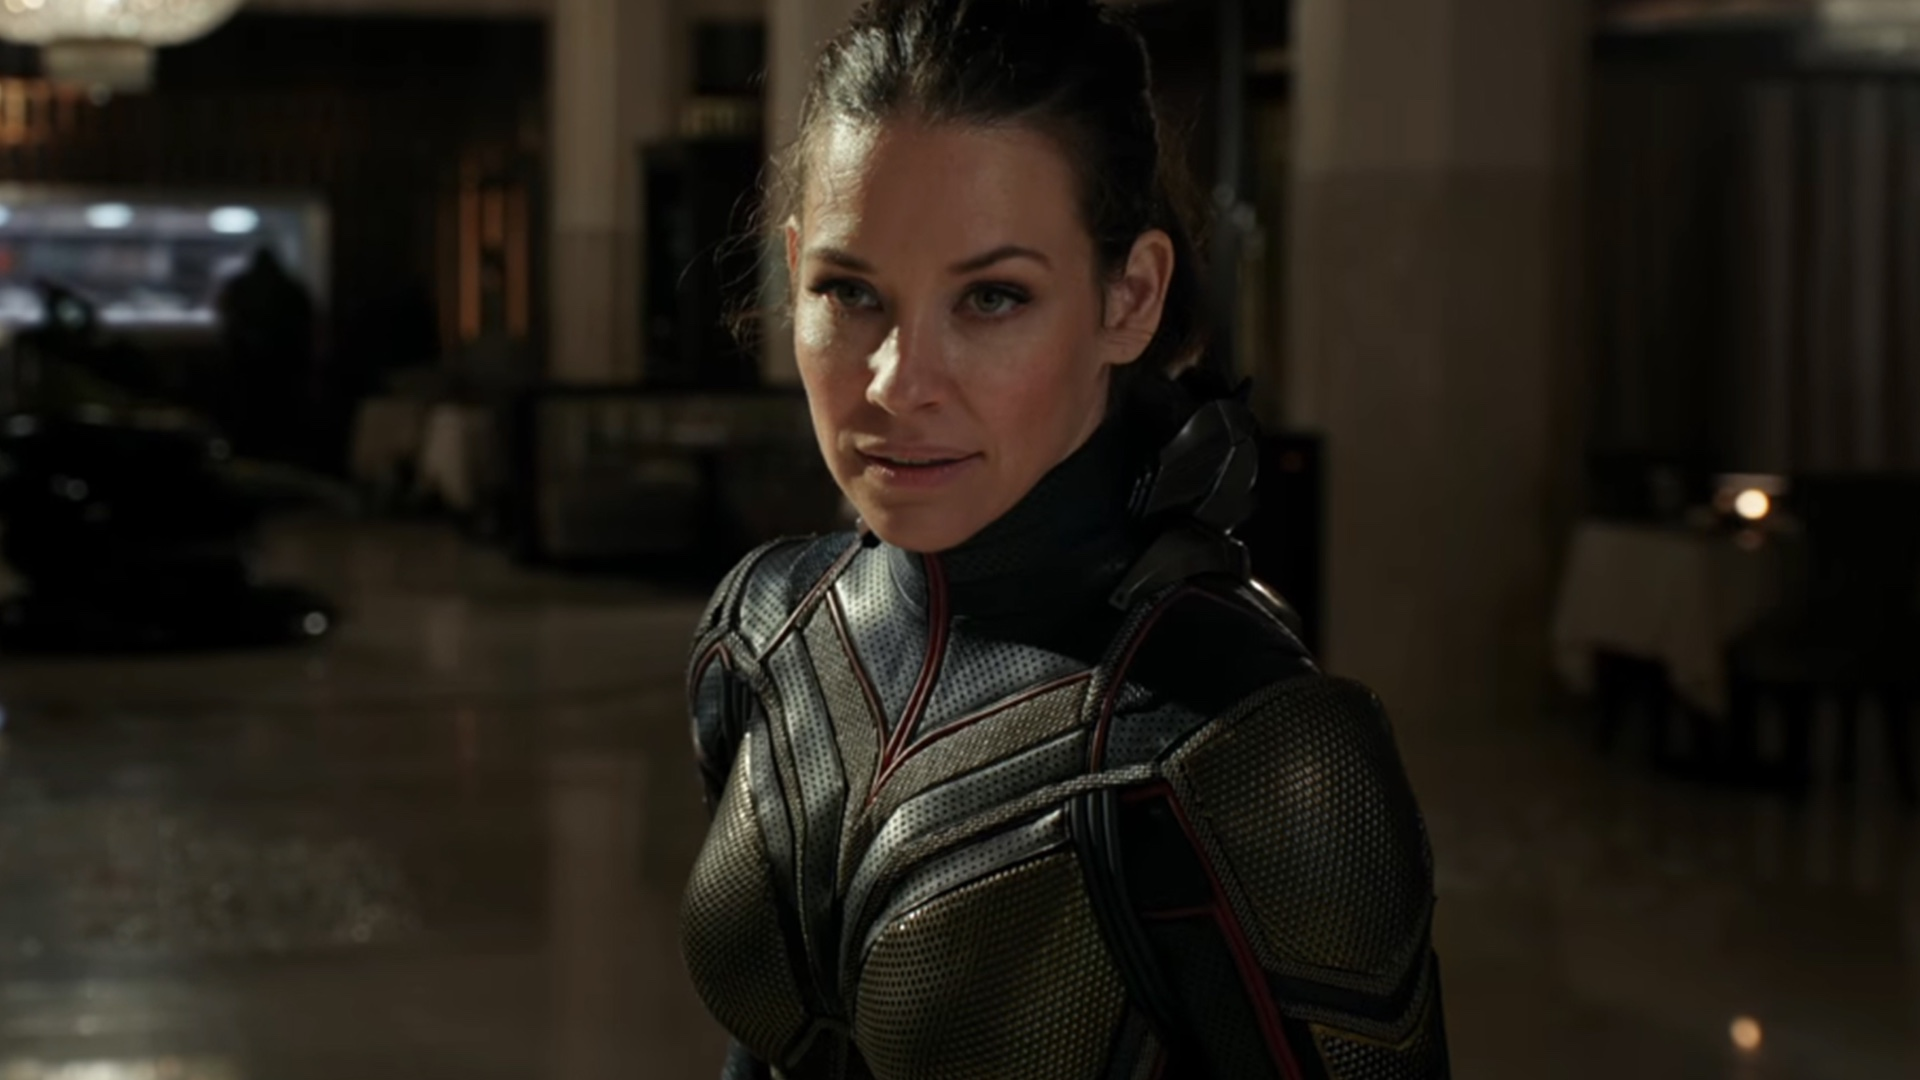 evangeline-lilly-explains-that-avengers-4-is-headed-into-lost-territory-social.jpg